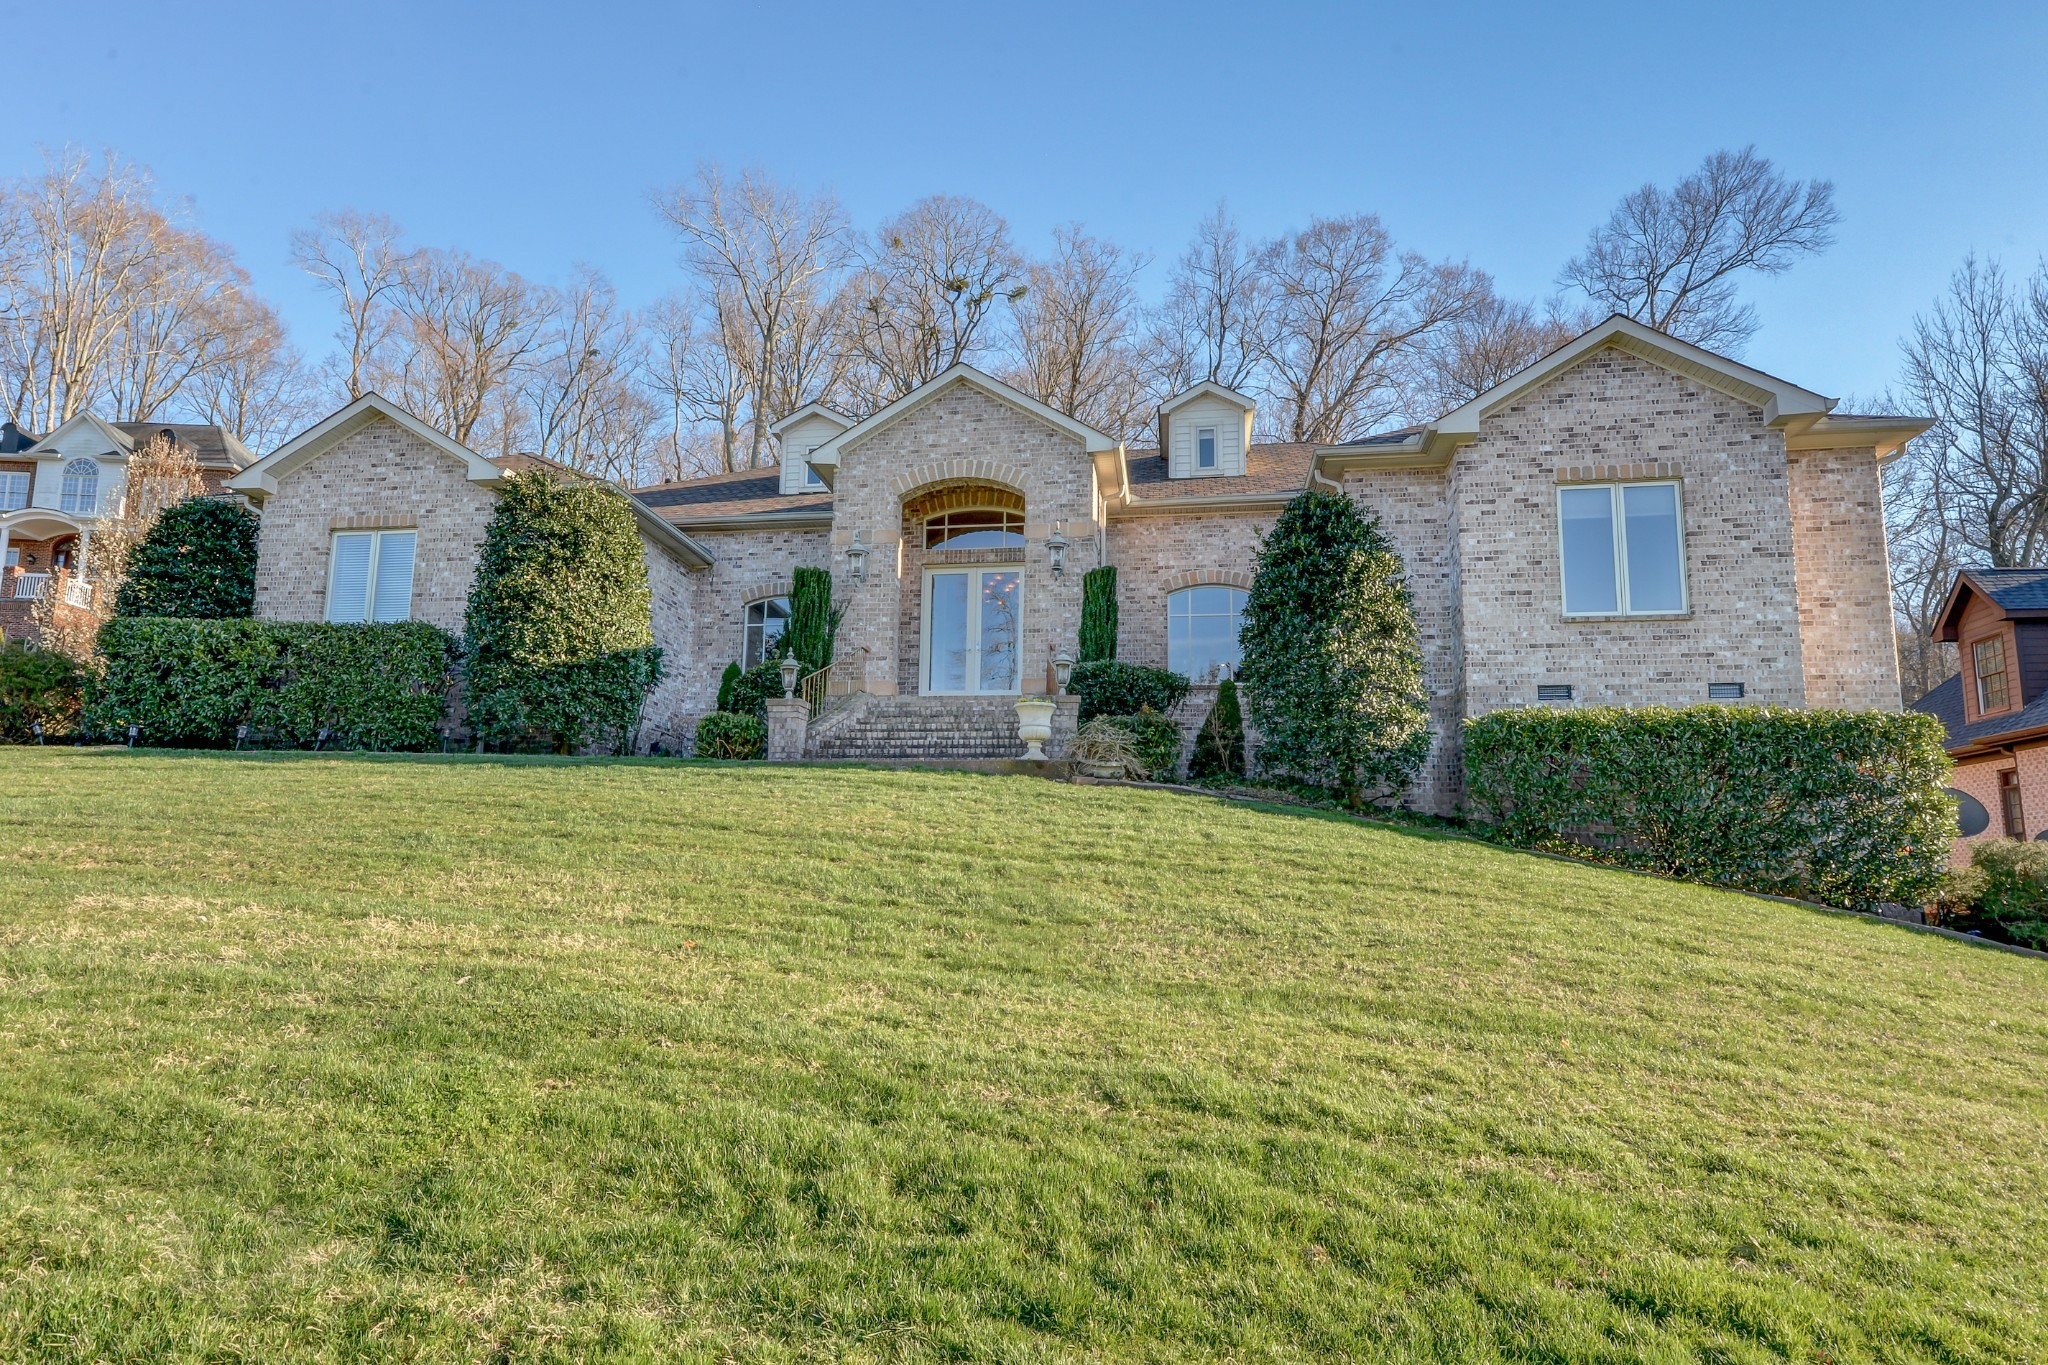 913 Gold Hill Ct Property Photo - Franklin, TN real estate listing